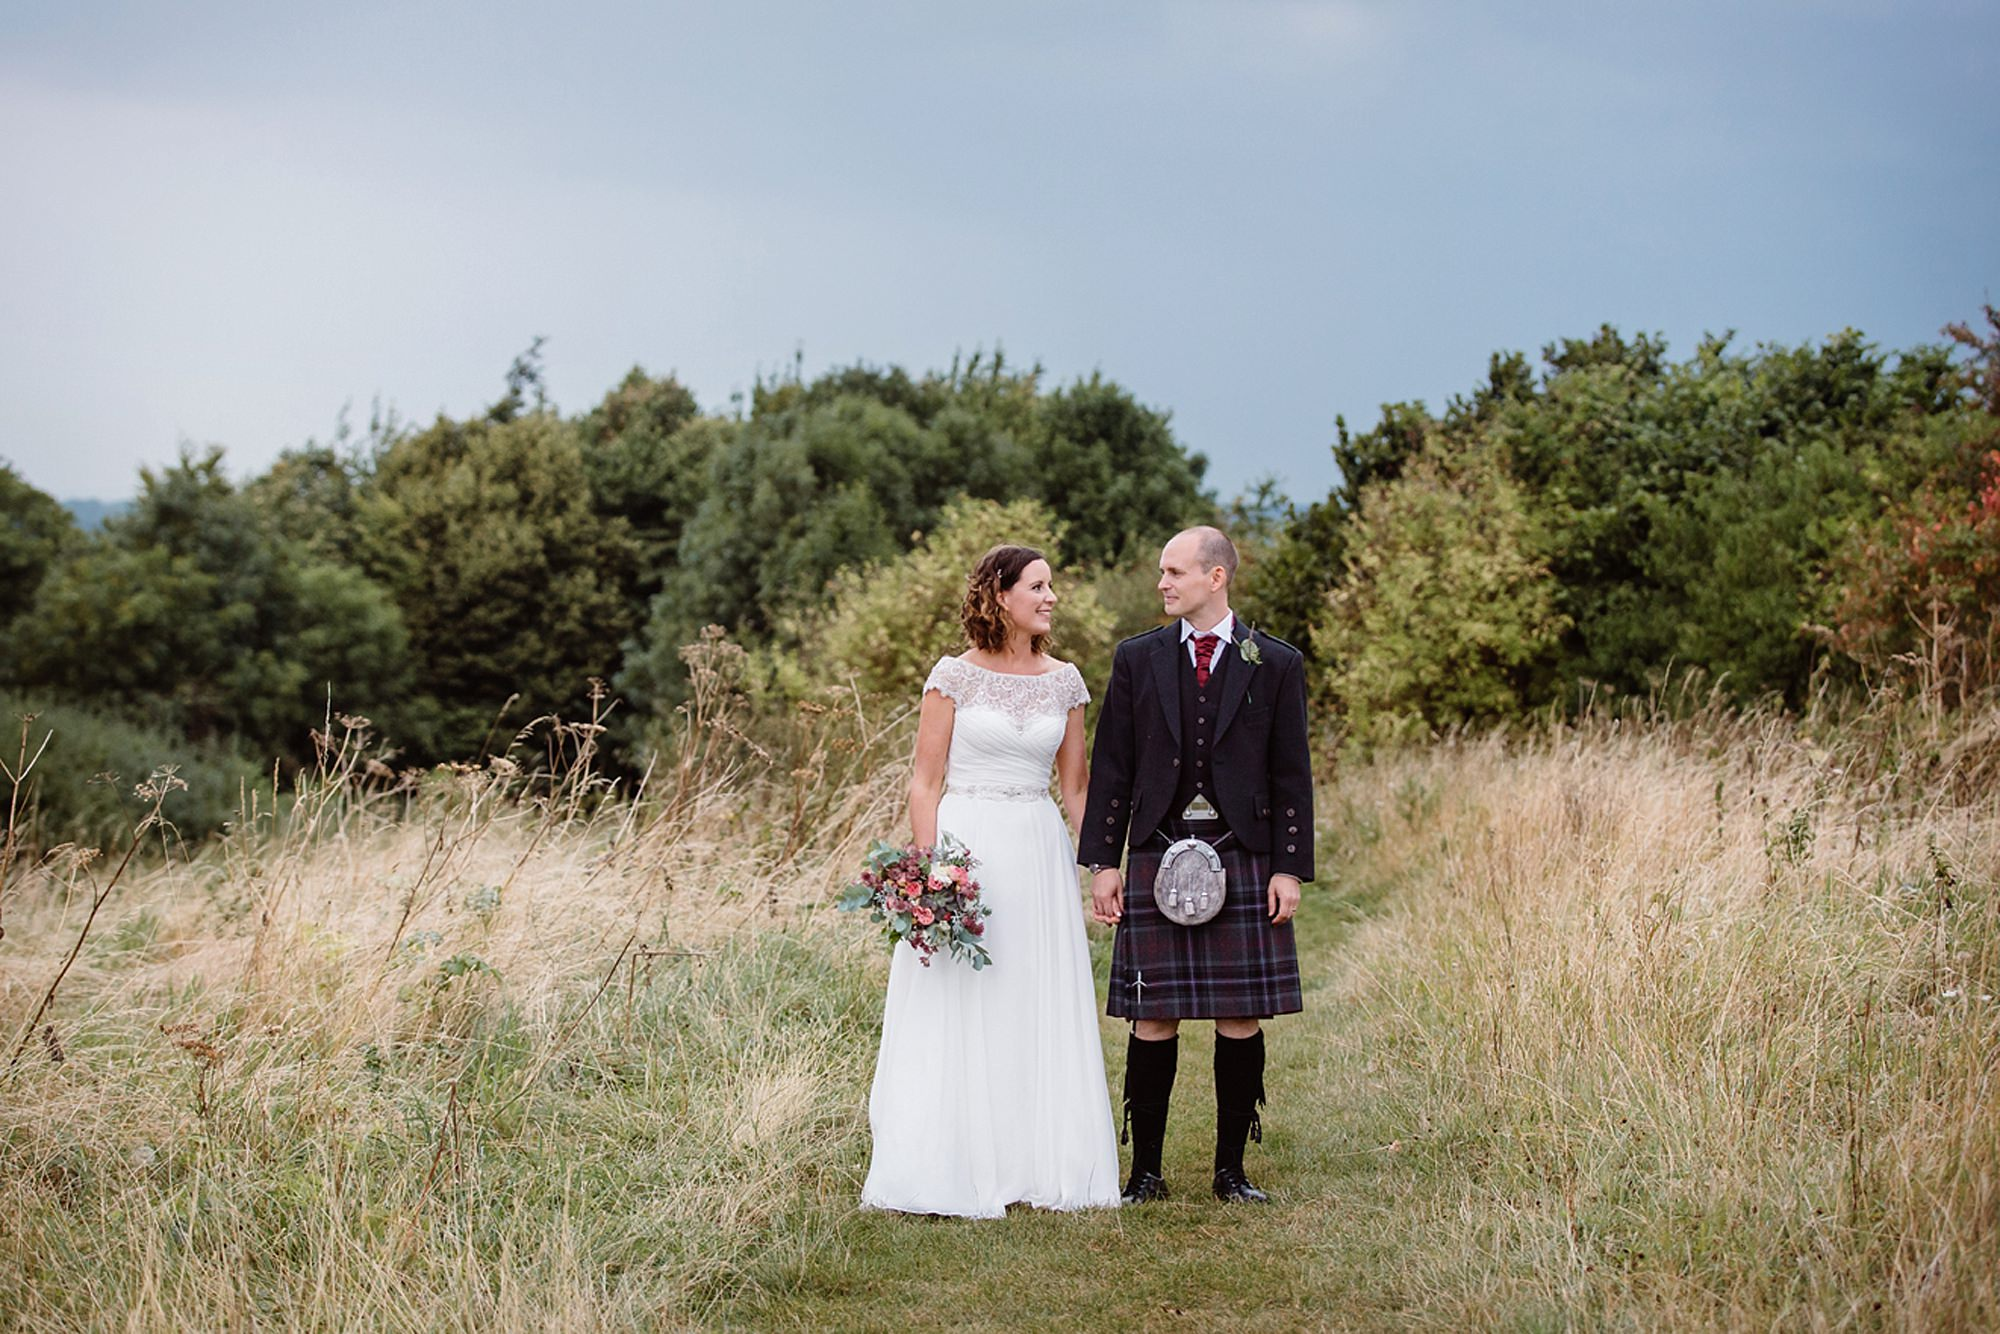 outdoor humanist wedding photography bride and groom together in field